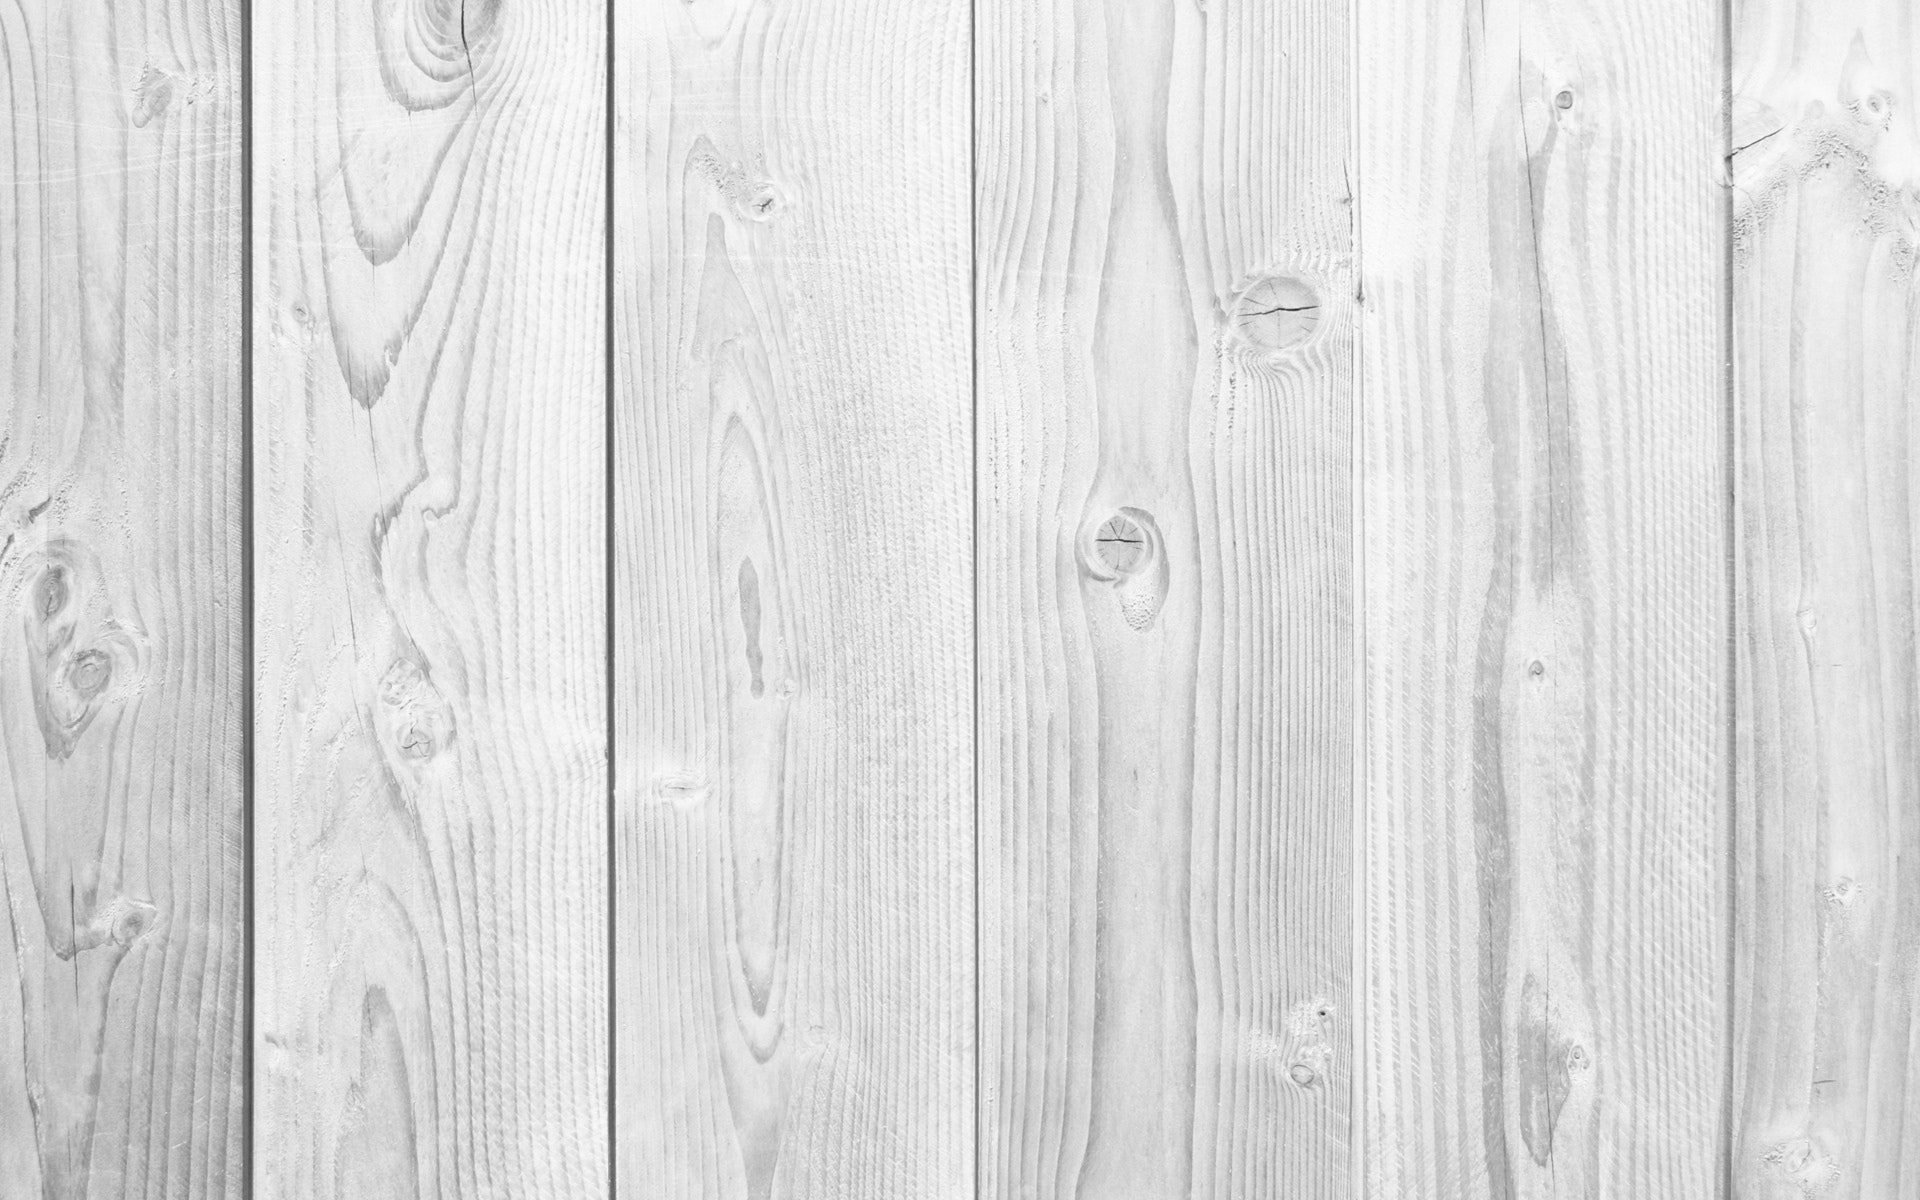 white wood floor texture. You ll find wood textured images and themed photos along with pictures  of wooden tables other furniture things made Wood Images Pexels Free Stock Photos